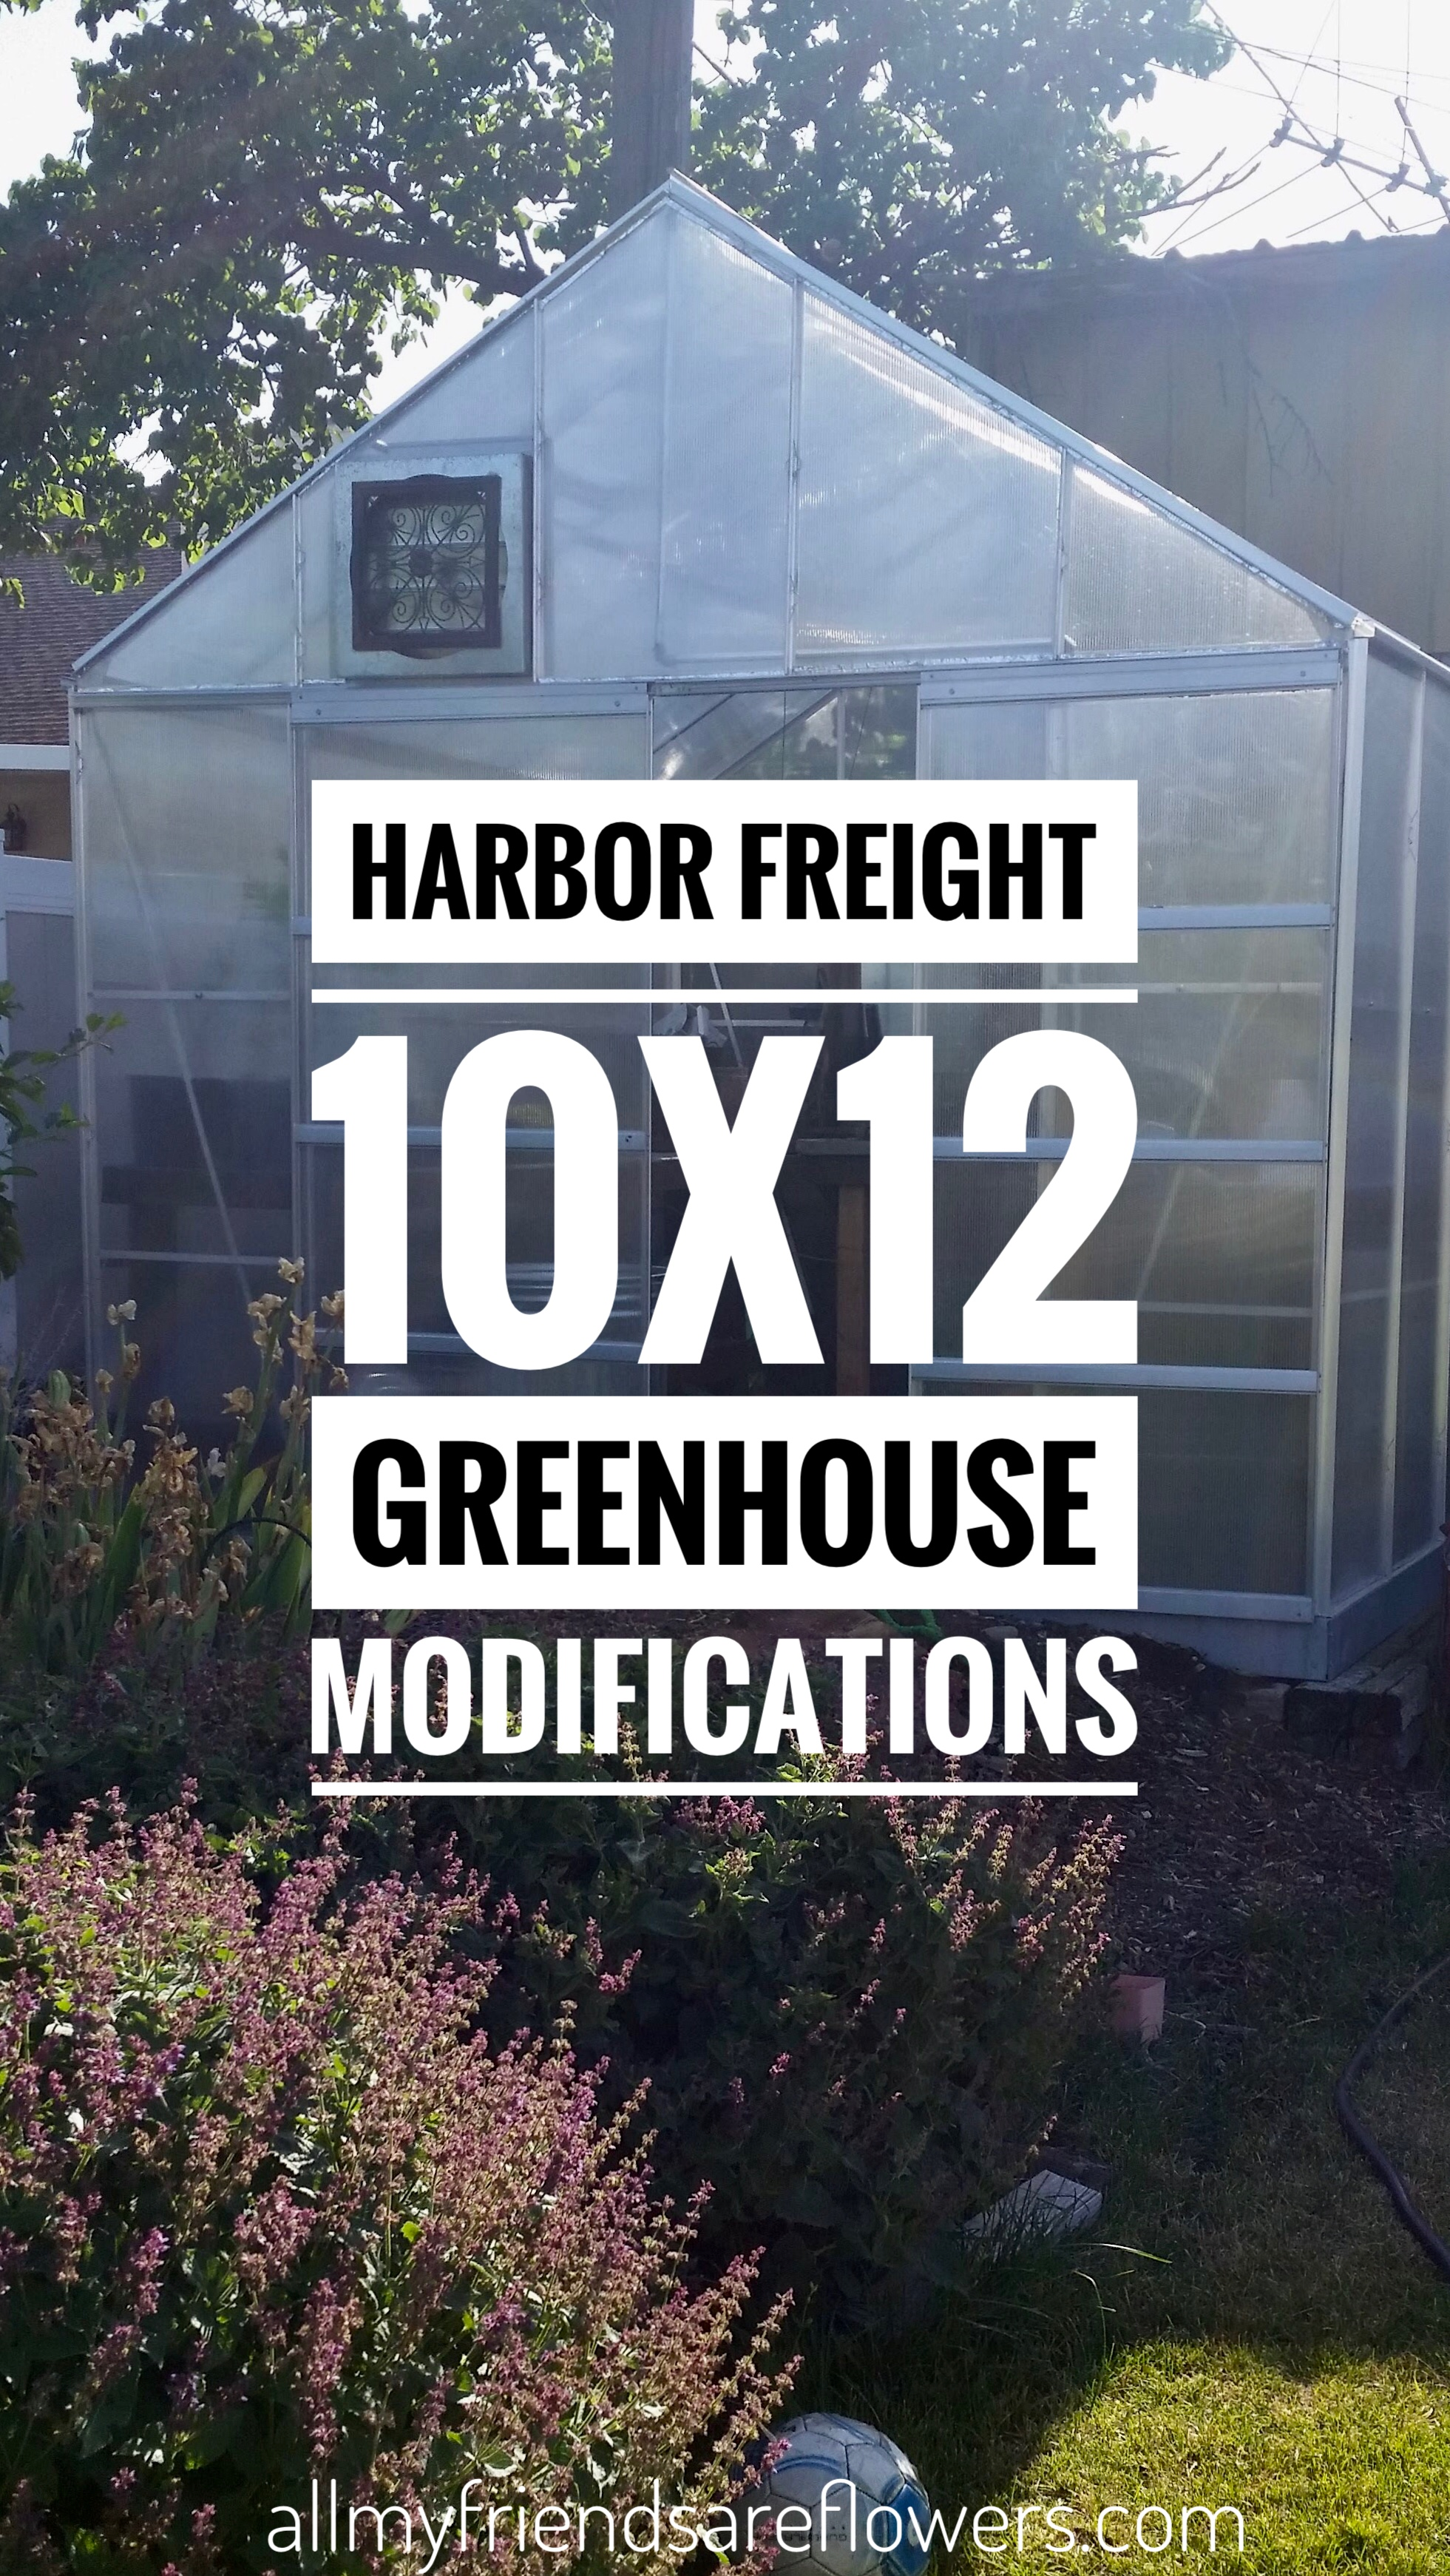 Harbor freight greenhouse modifications on